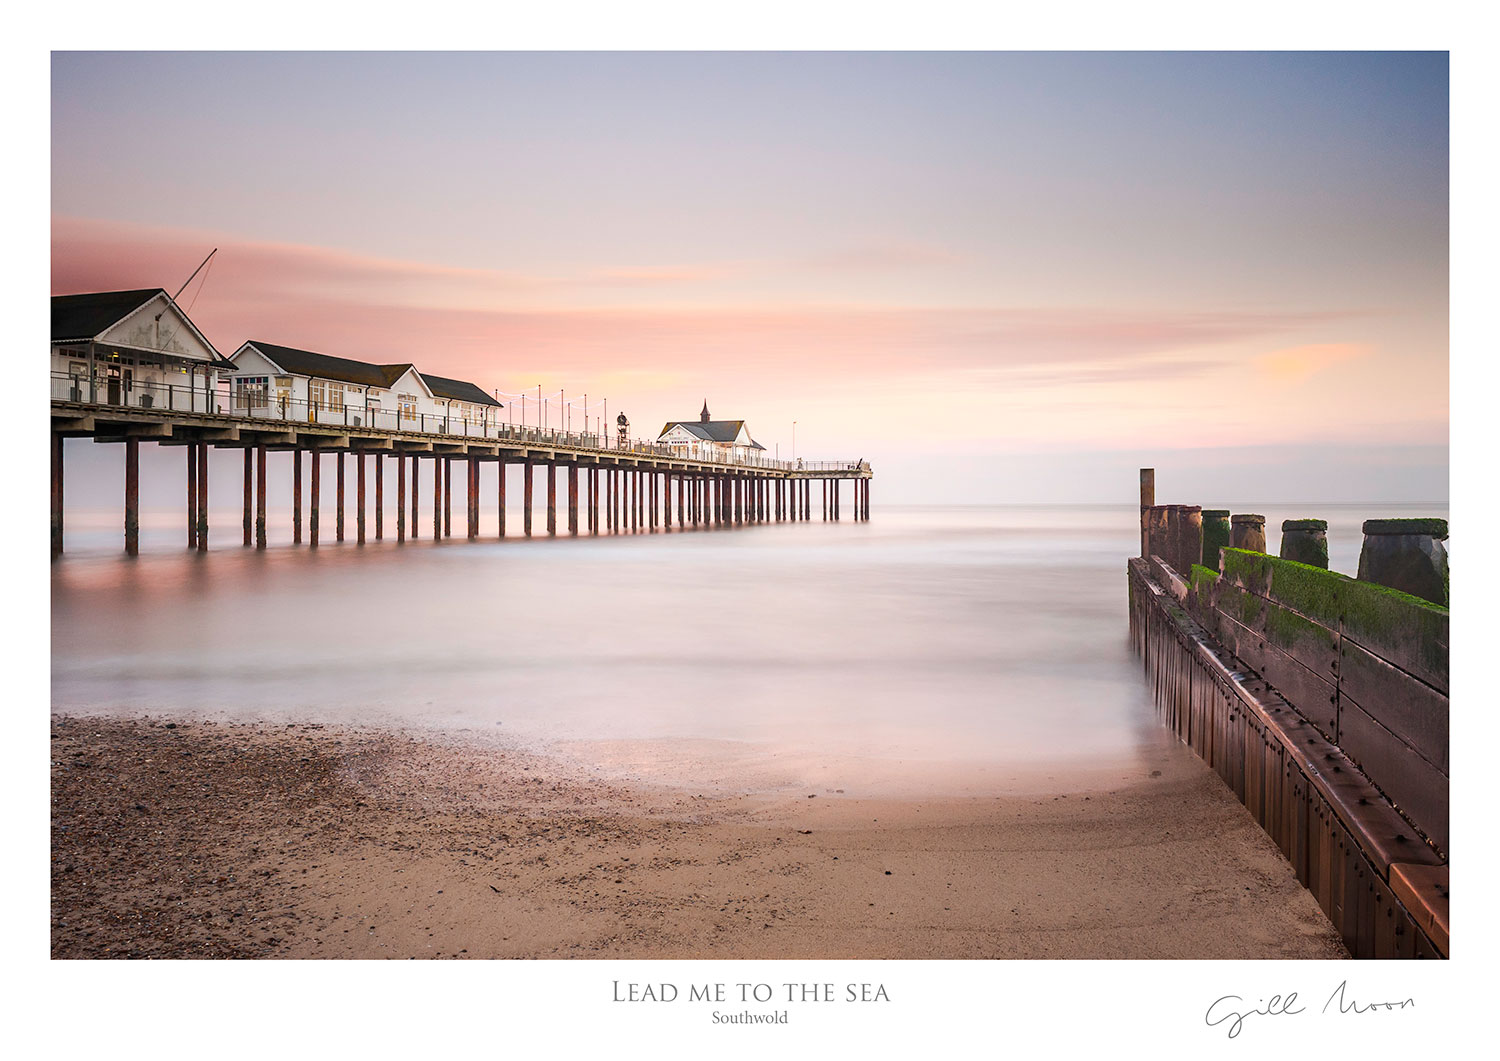 Lead me to the sea, Southwold